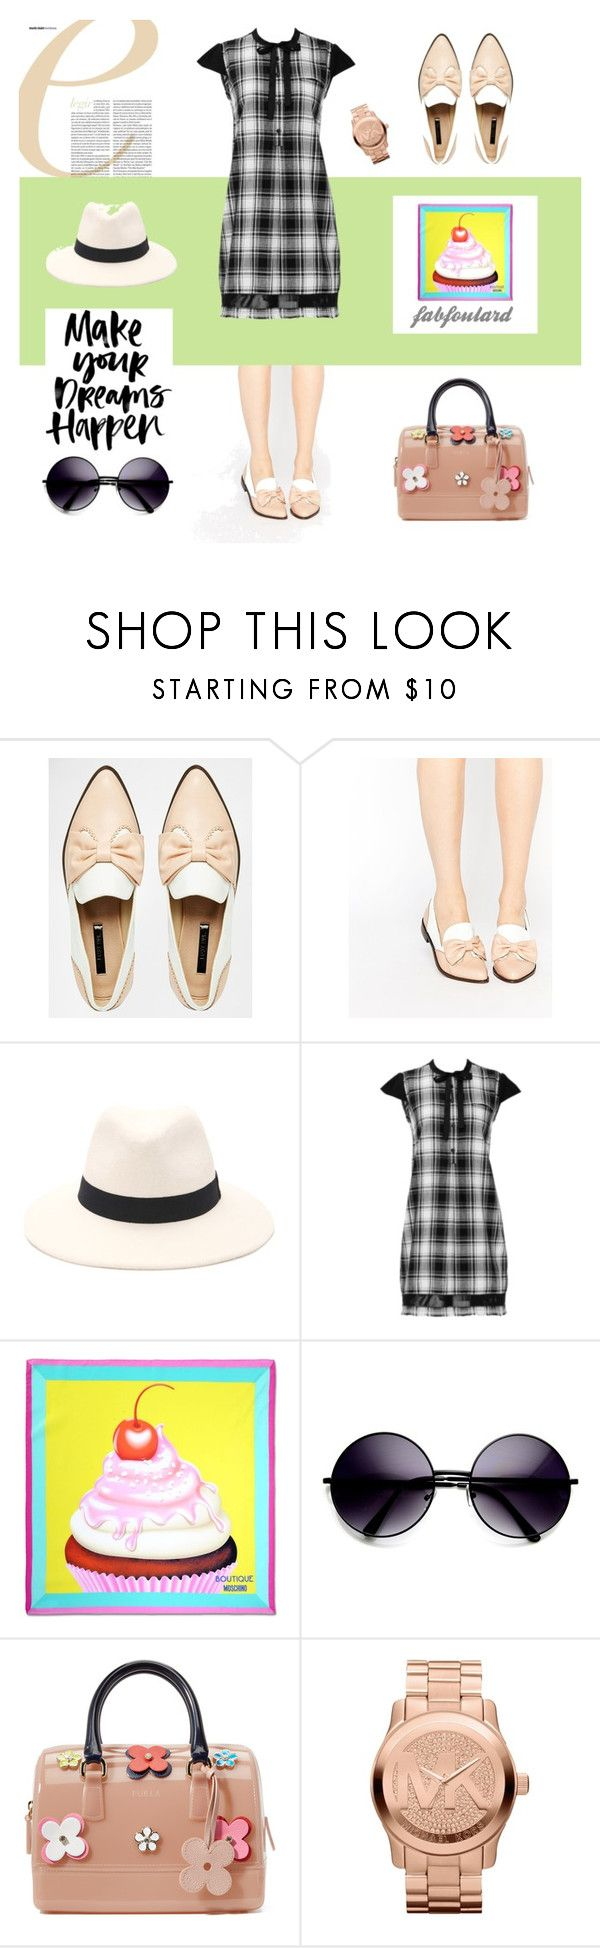 """""""Walking on the golf grass"""" by pinfi on Polyvore featuring Lost Ink, Forever 21, Boutique Moschino, ZeroUV, Furla and Michael Kors #trend #fashion #oxford #pink"""